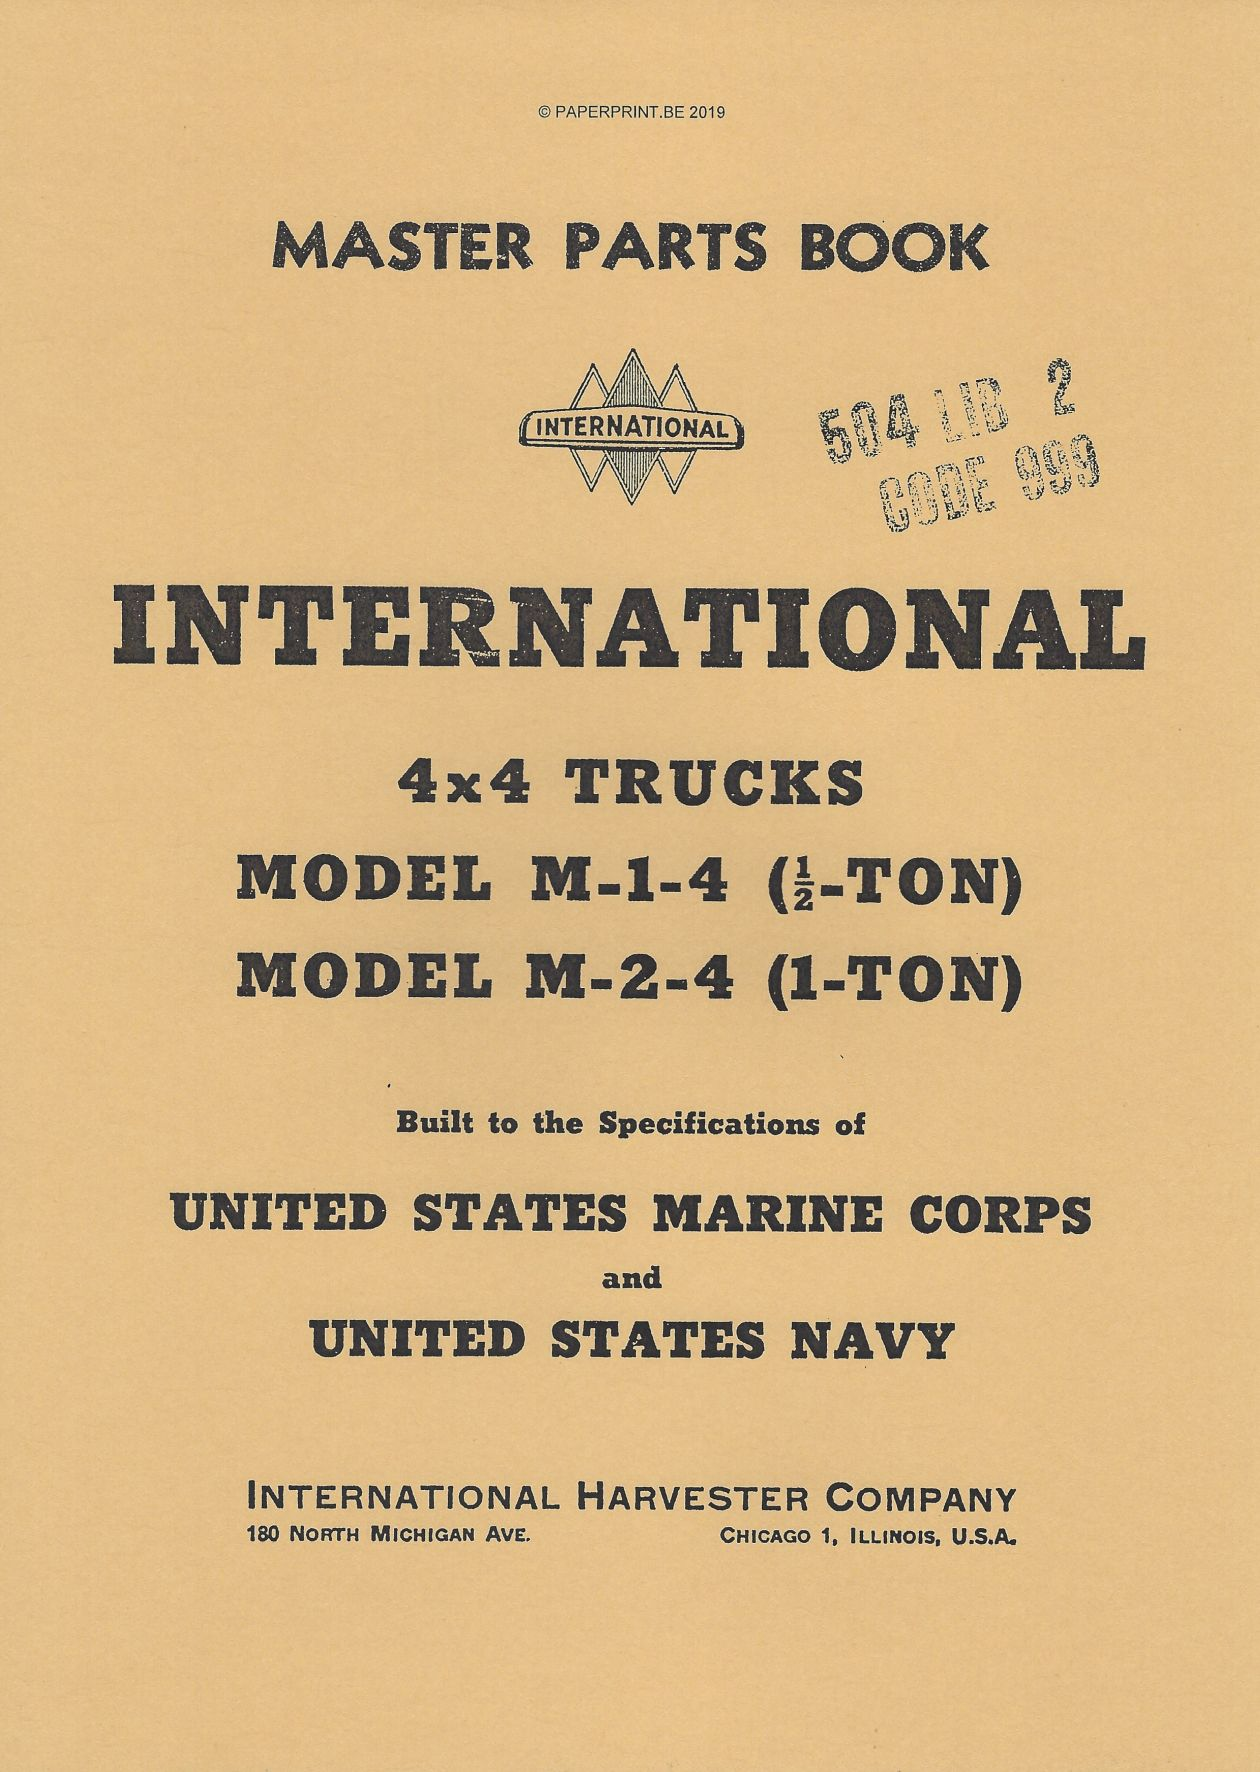 INTERNATIONAL 4 x 4 M-1-4 AND M-2-4 MASTER PARTS BOOK